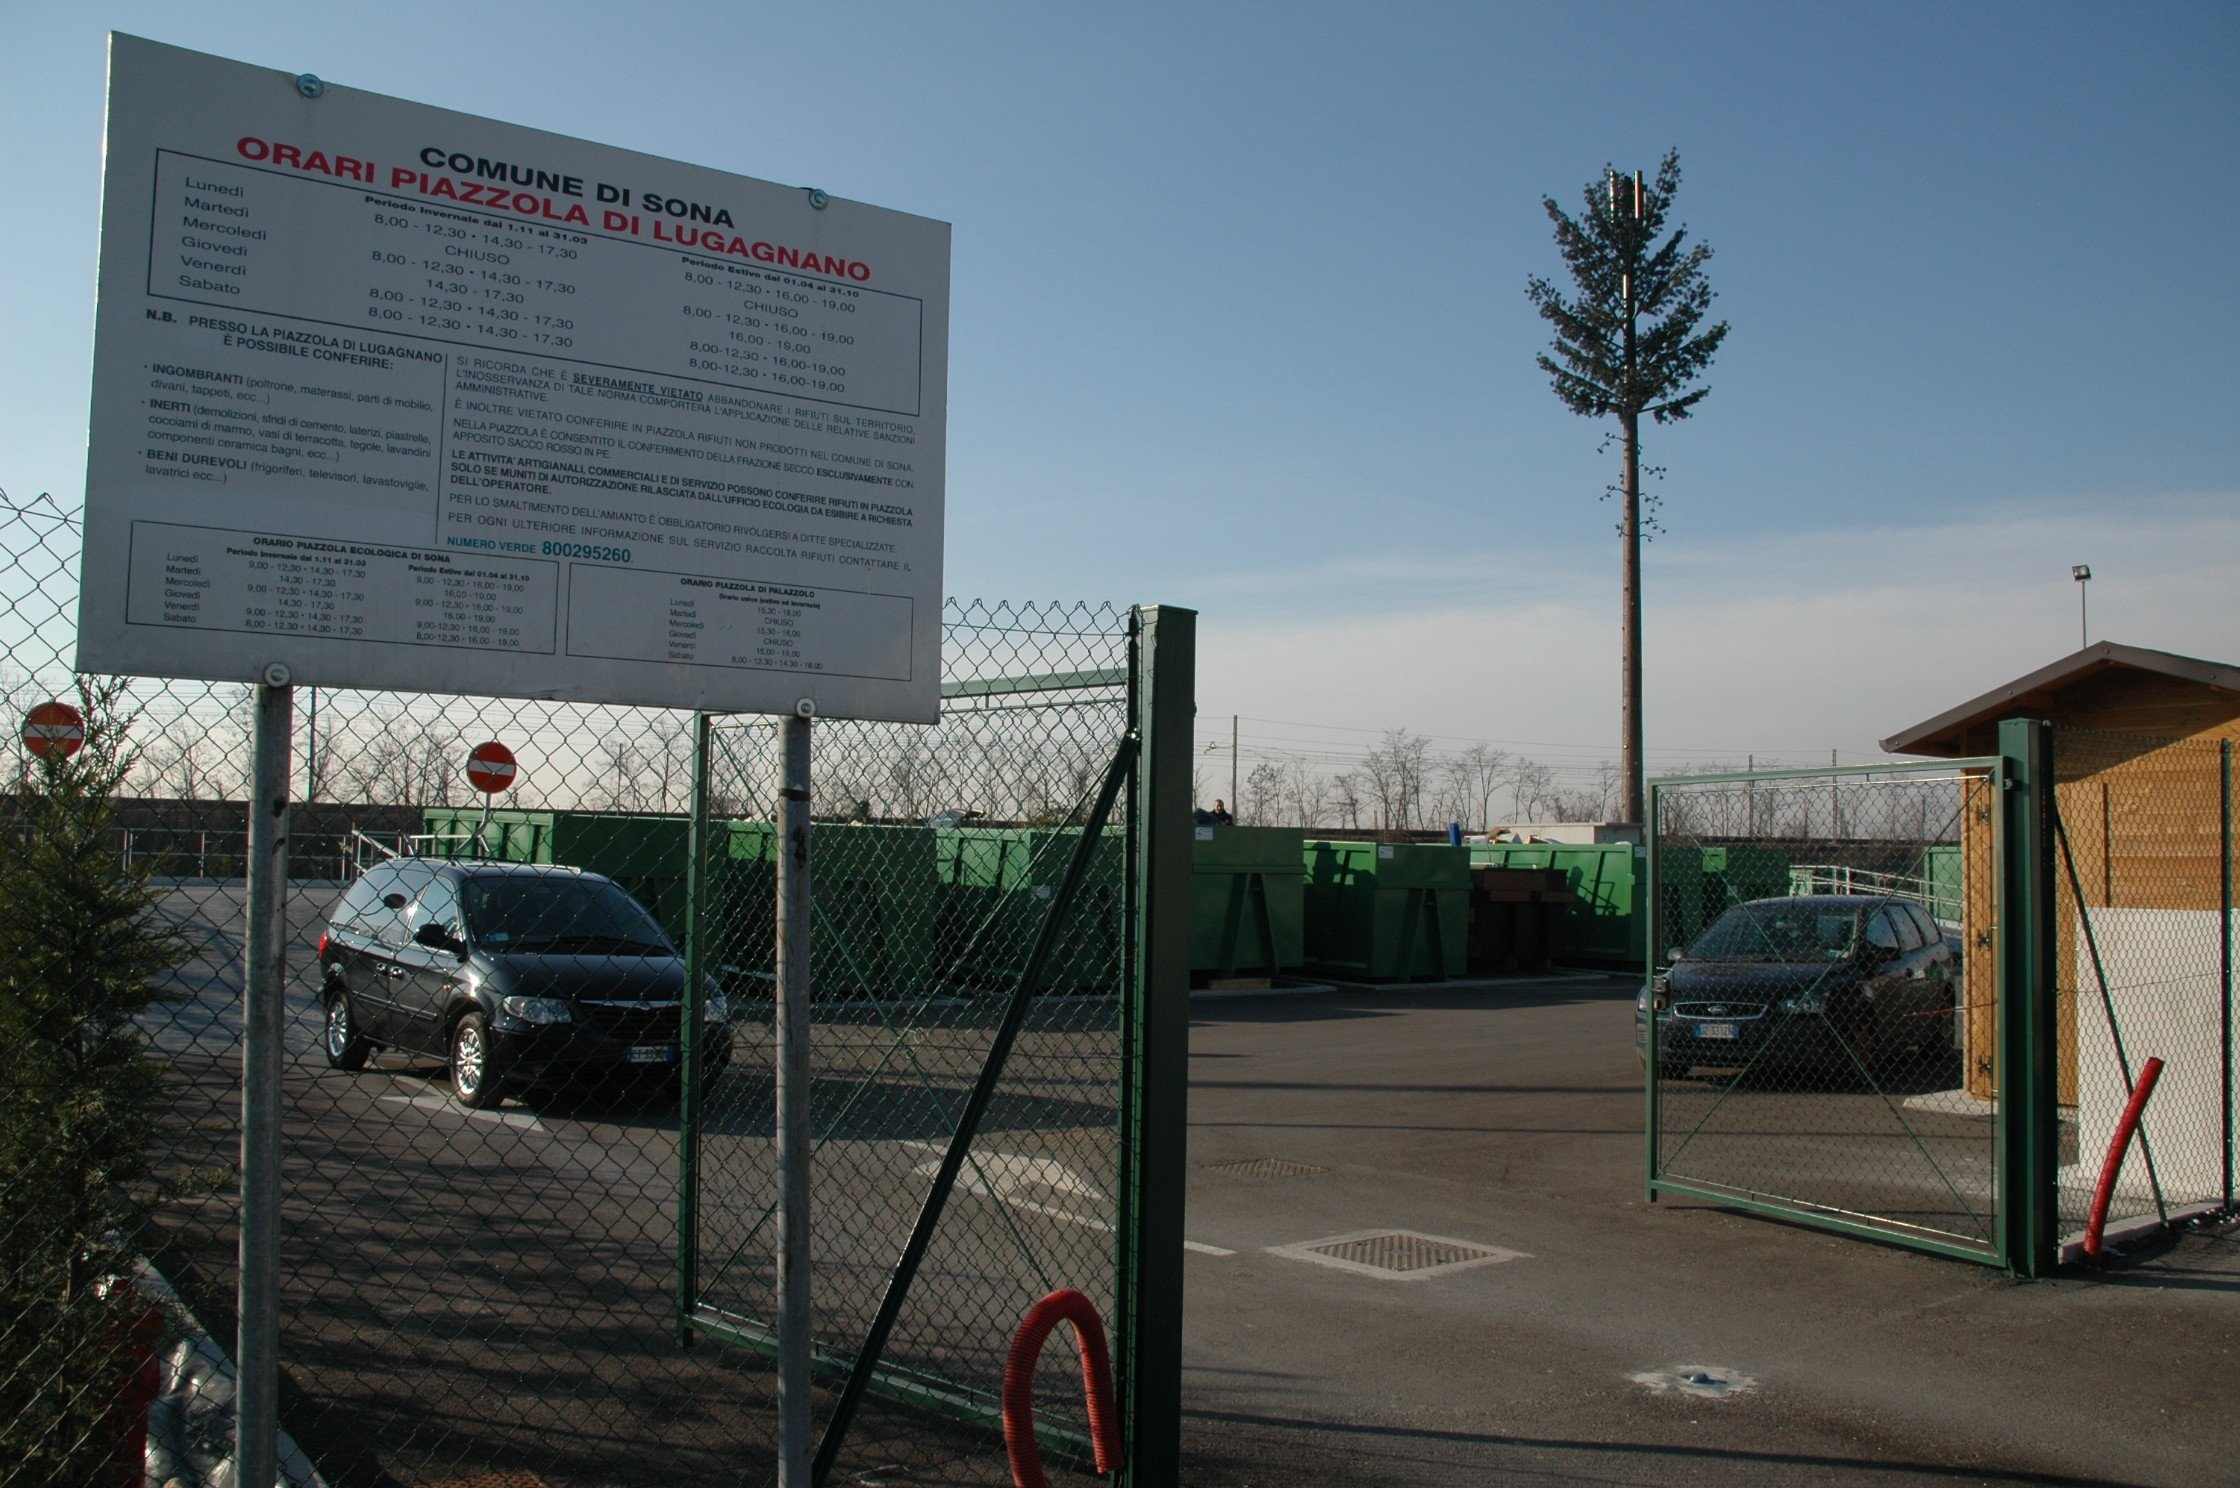 Piazzola Ecologica3